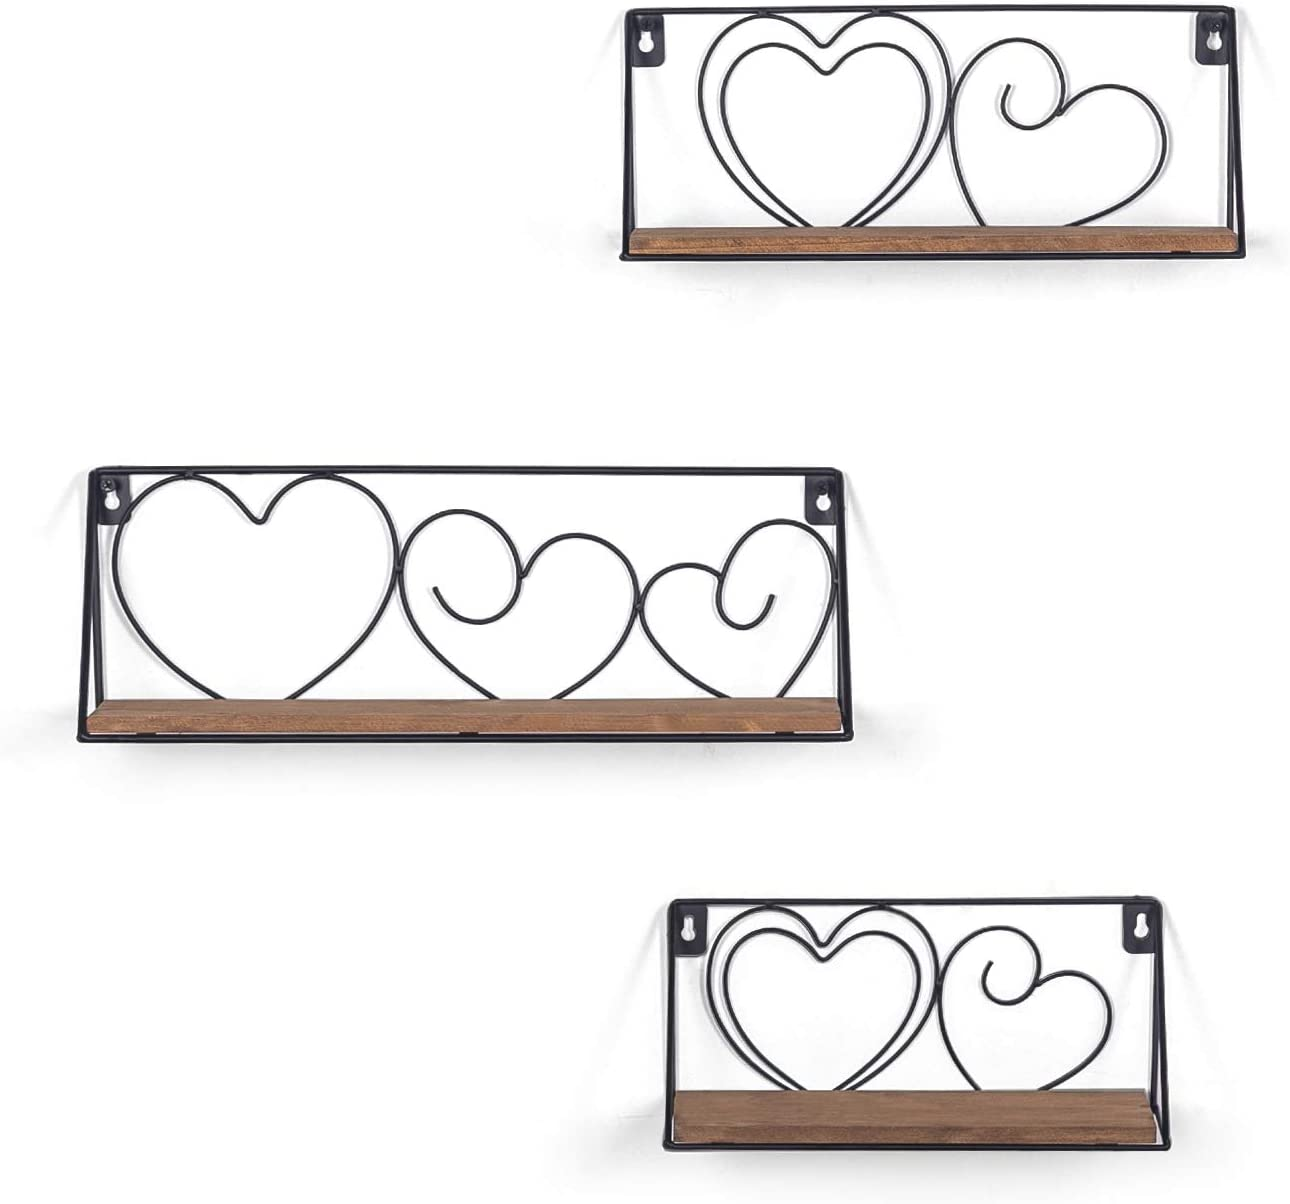 Decent Home Rustic Wall Mounted Floating Shelves Set of 3 Wrought Iron Hanging Shelf for Living Room, Bedroom, Bathroom Farmhouse Decor (Brown)